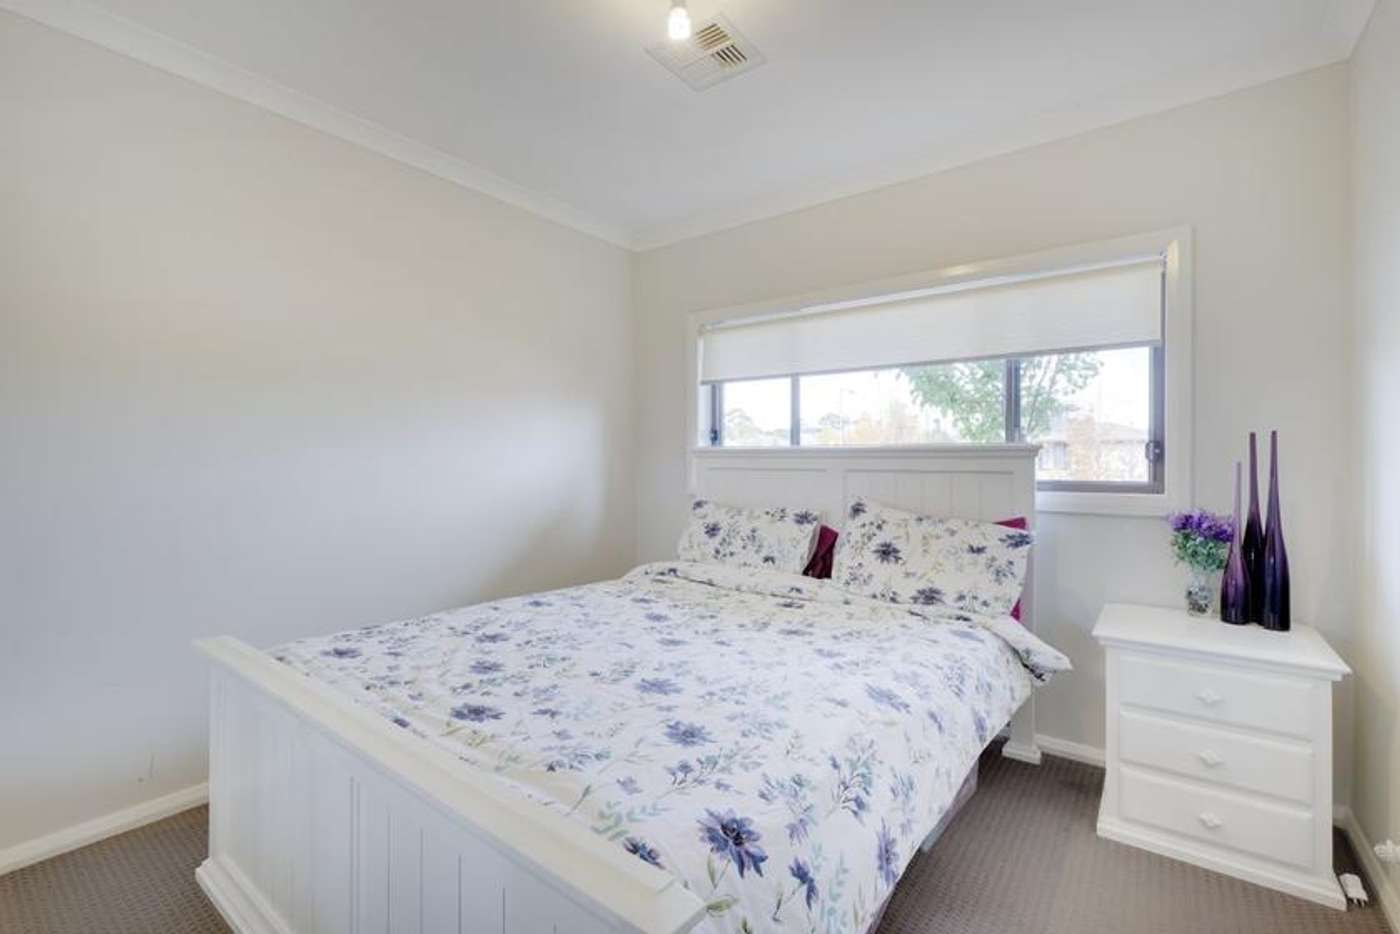 Sixth view of Homely townhouse listing, 65 Stowport Avenue, Crace ACT 2911